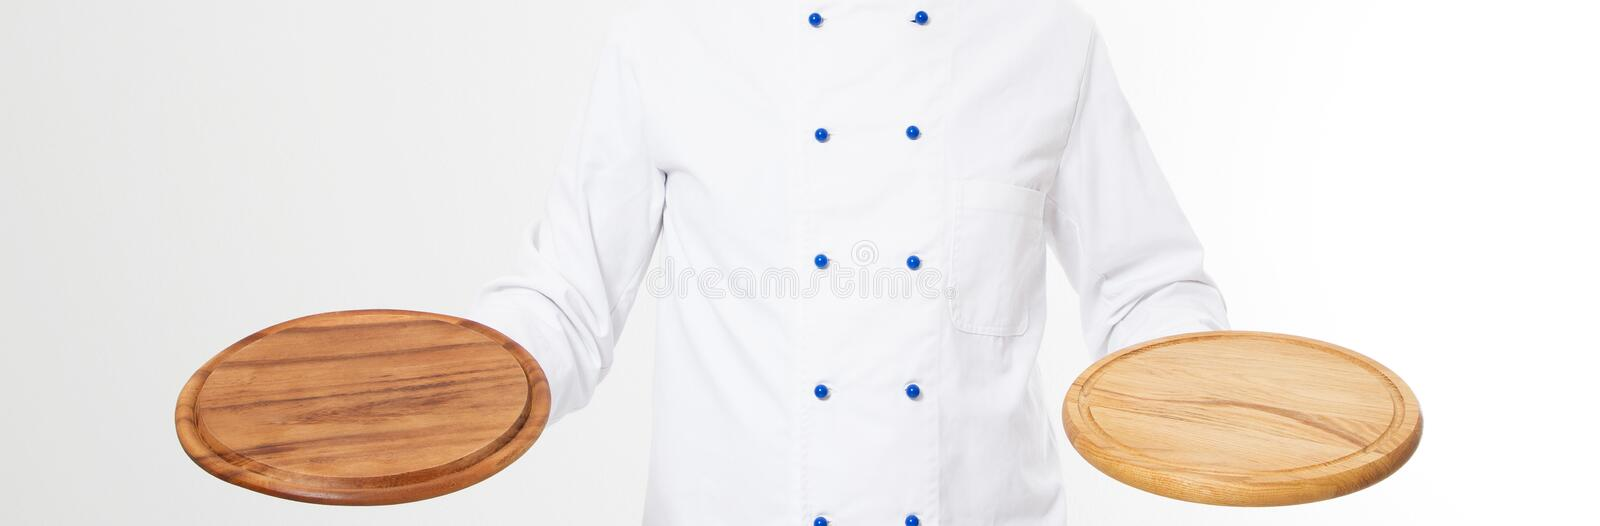 Chef holding empty pizza plate isolated on white background,copy space royalty free stock photos